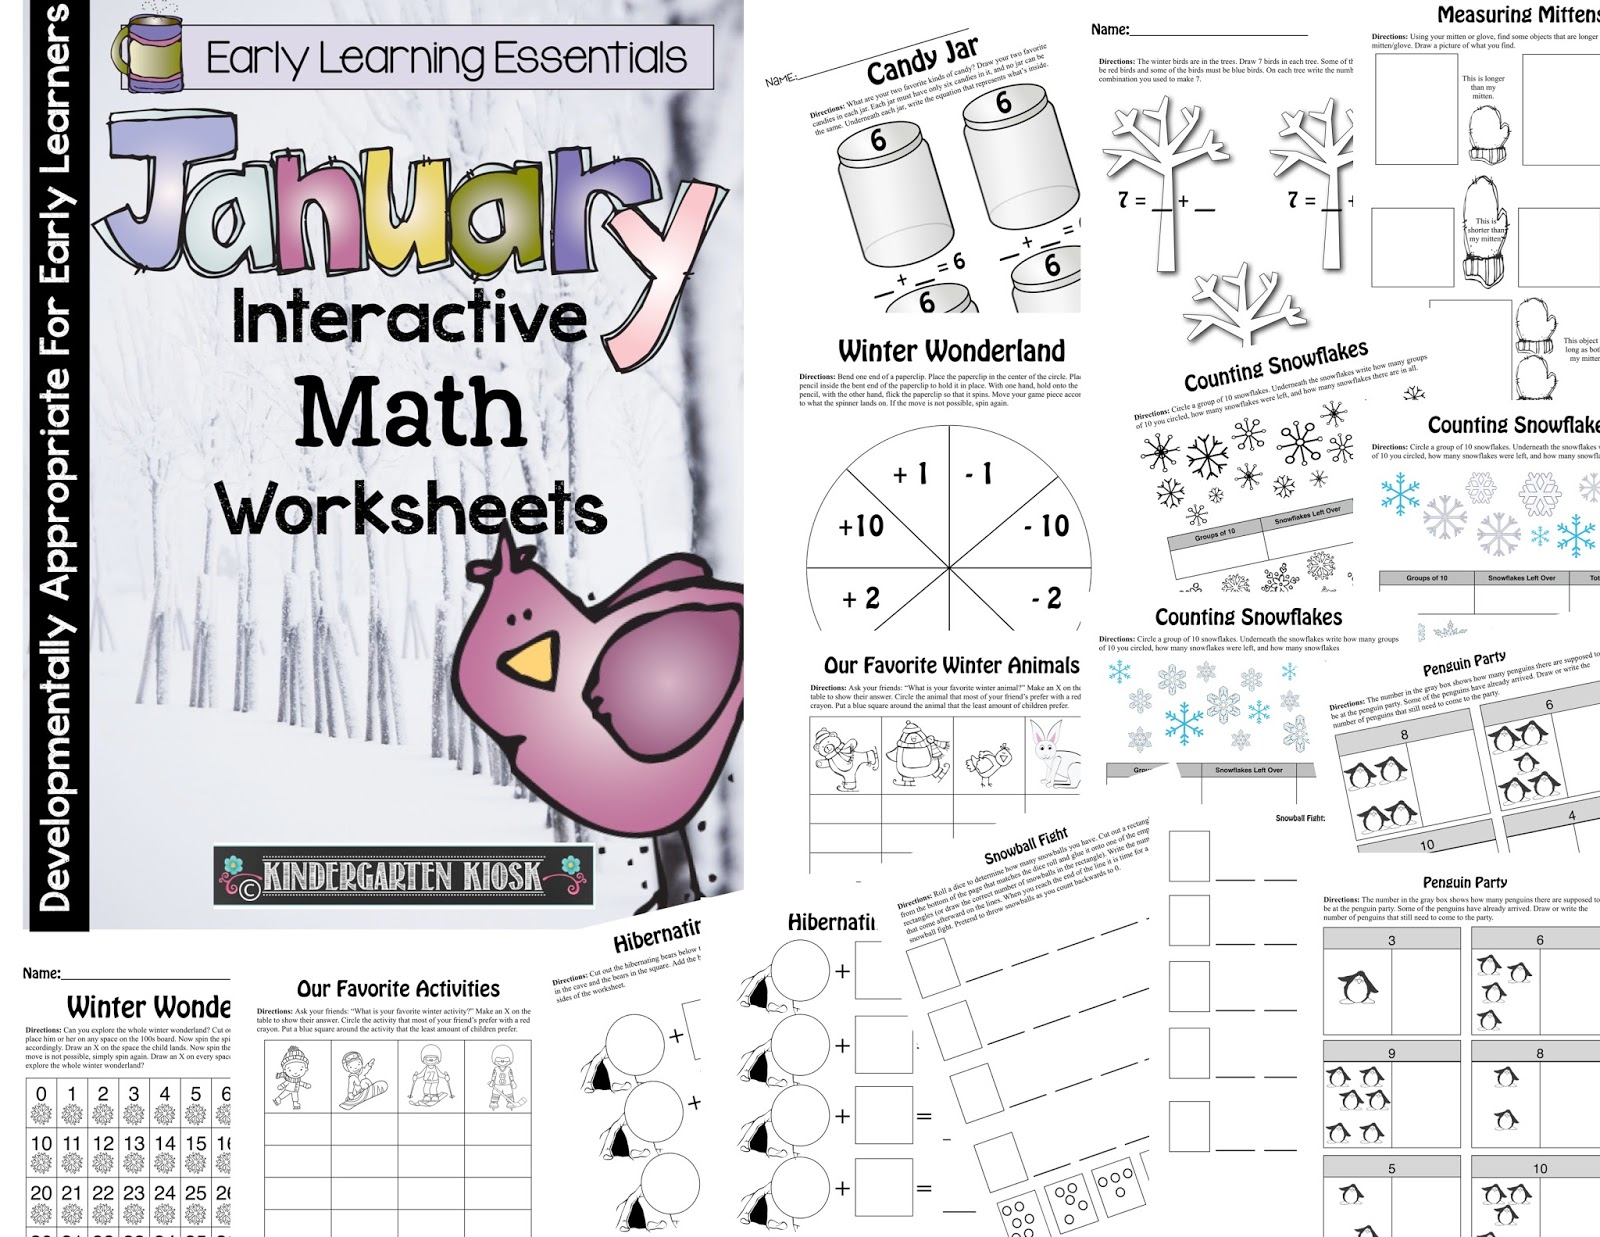 Kindergarten Kiosk January Interactive Math Worksheets